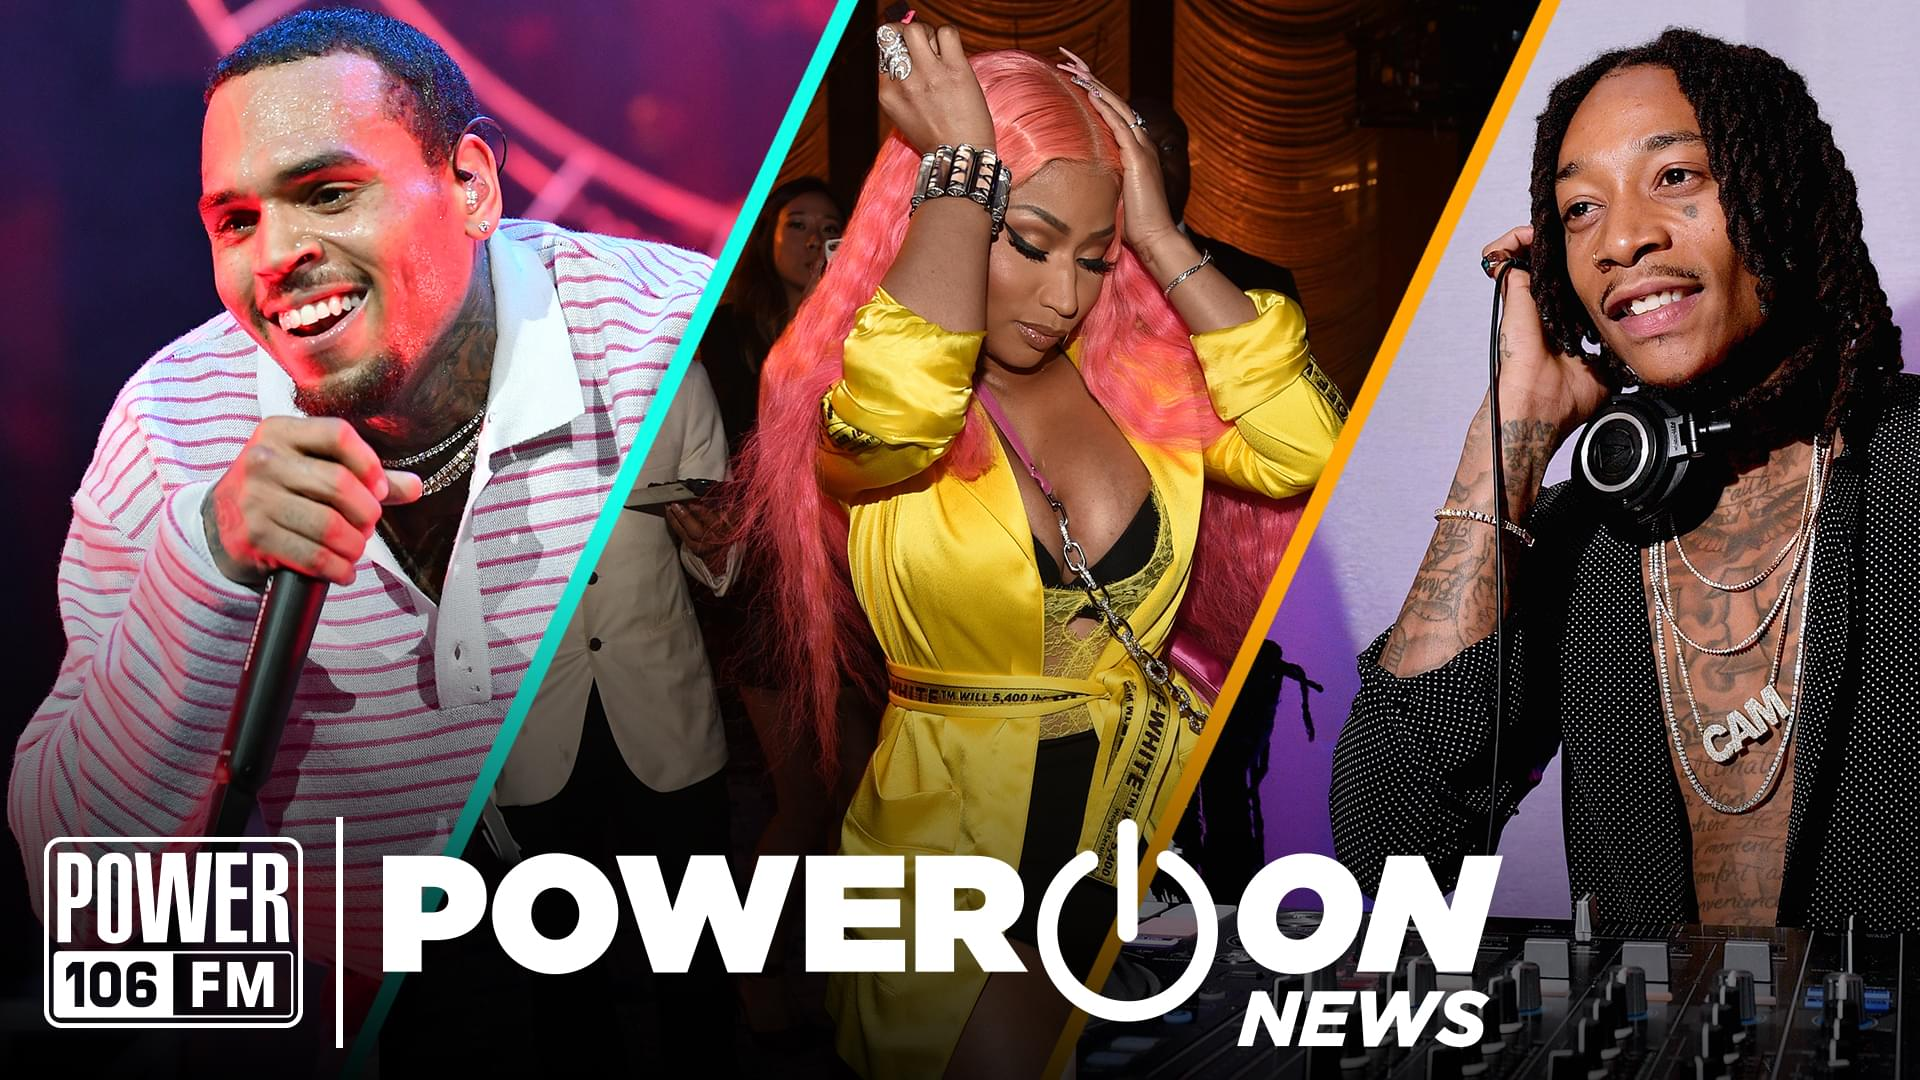 "#PowerOn: Chris Brown & Offset Beef On Instagram + Nicki Minaj Drops Problematic ""Thotiana"" Remix"